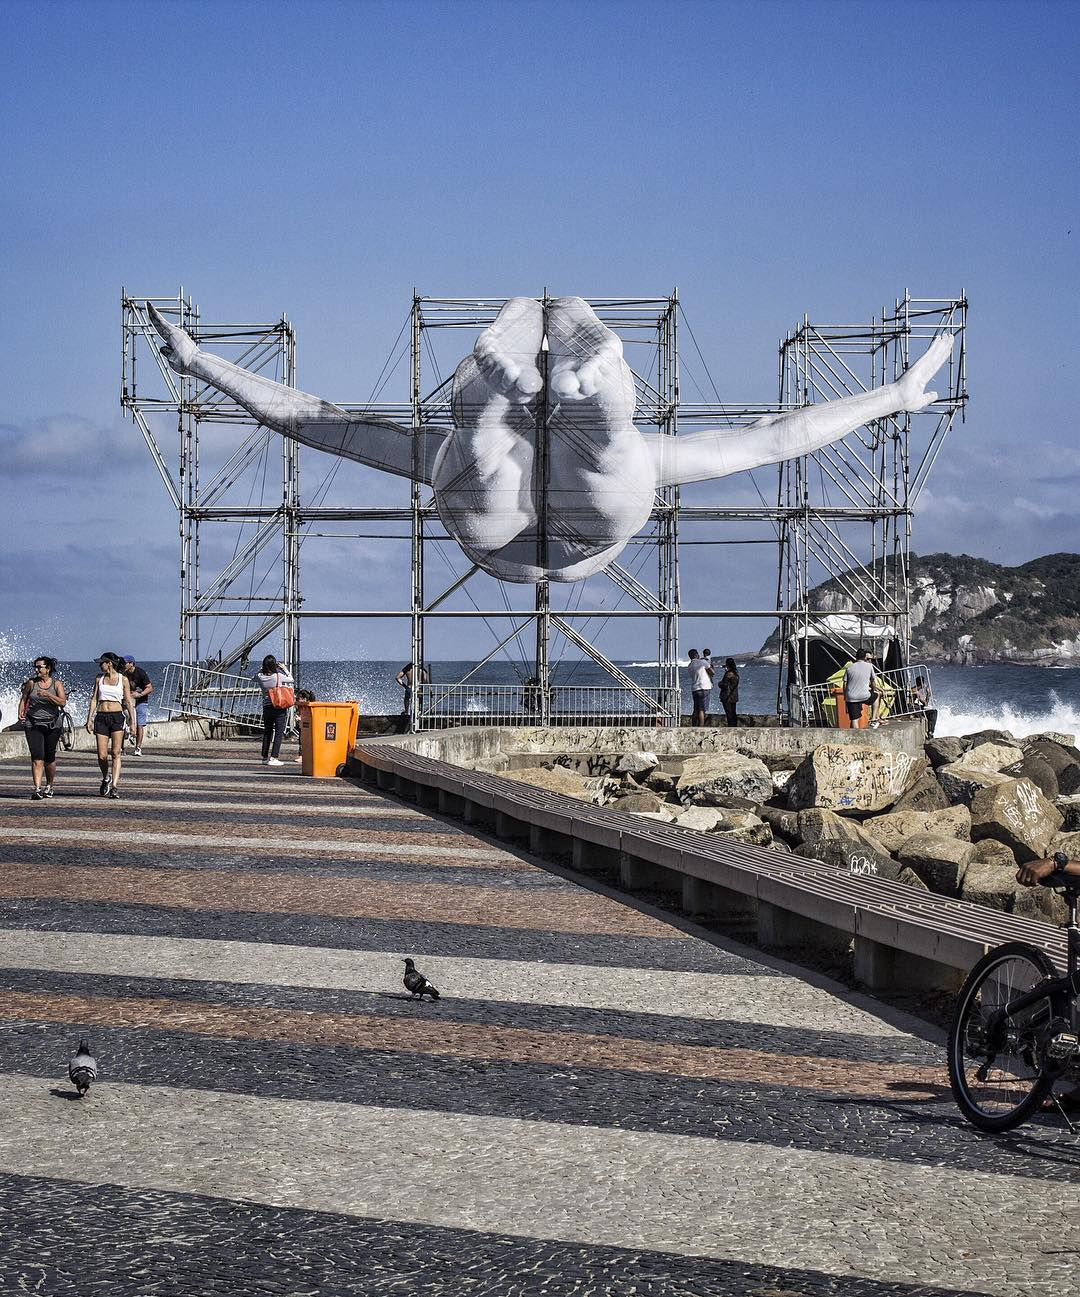 One of JR's GIANTS installations at the Brazilian Olympics